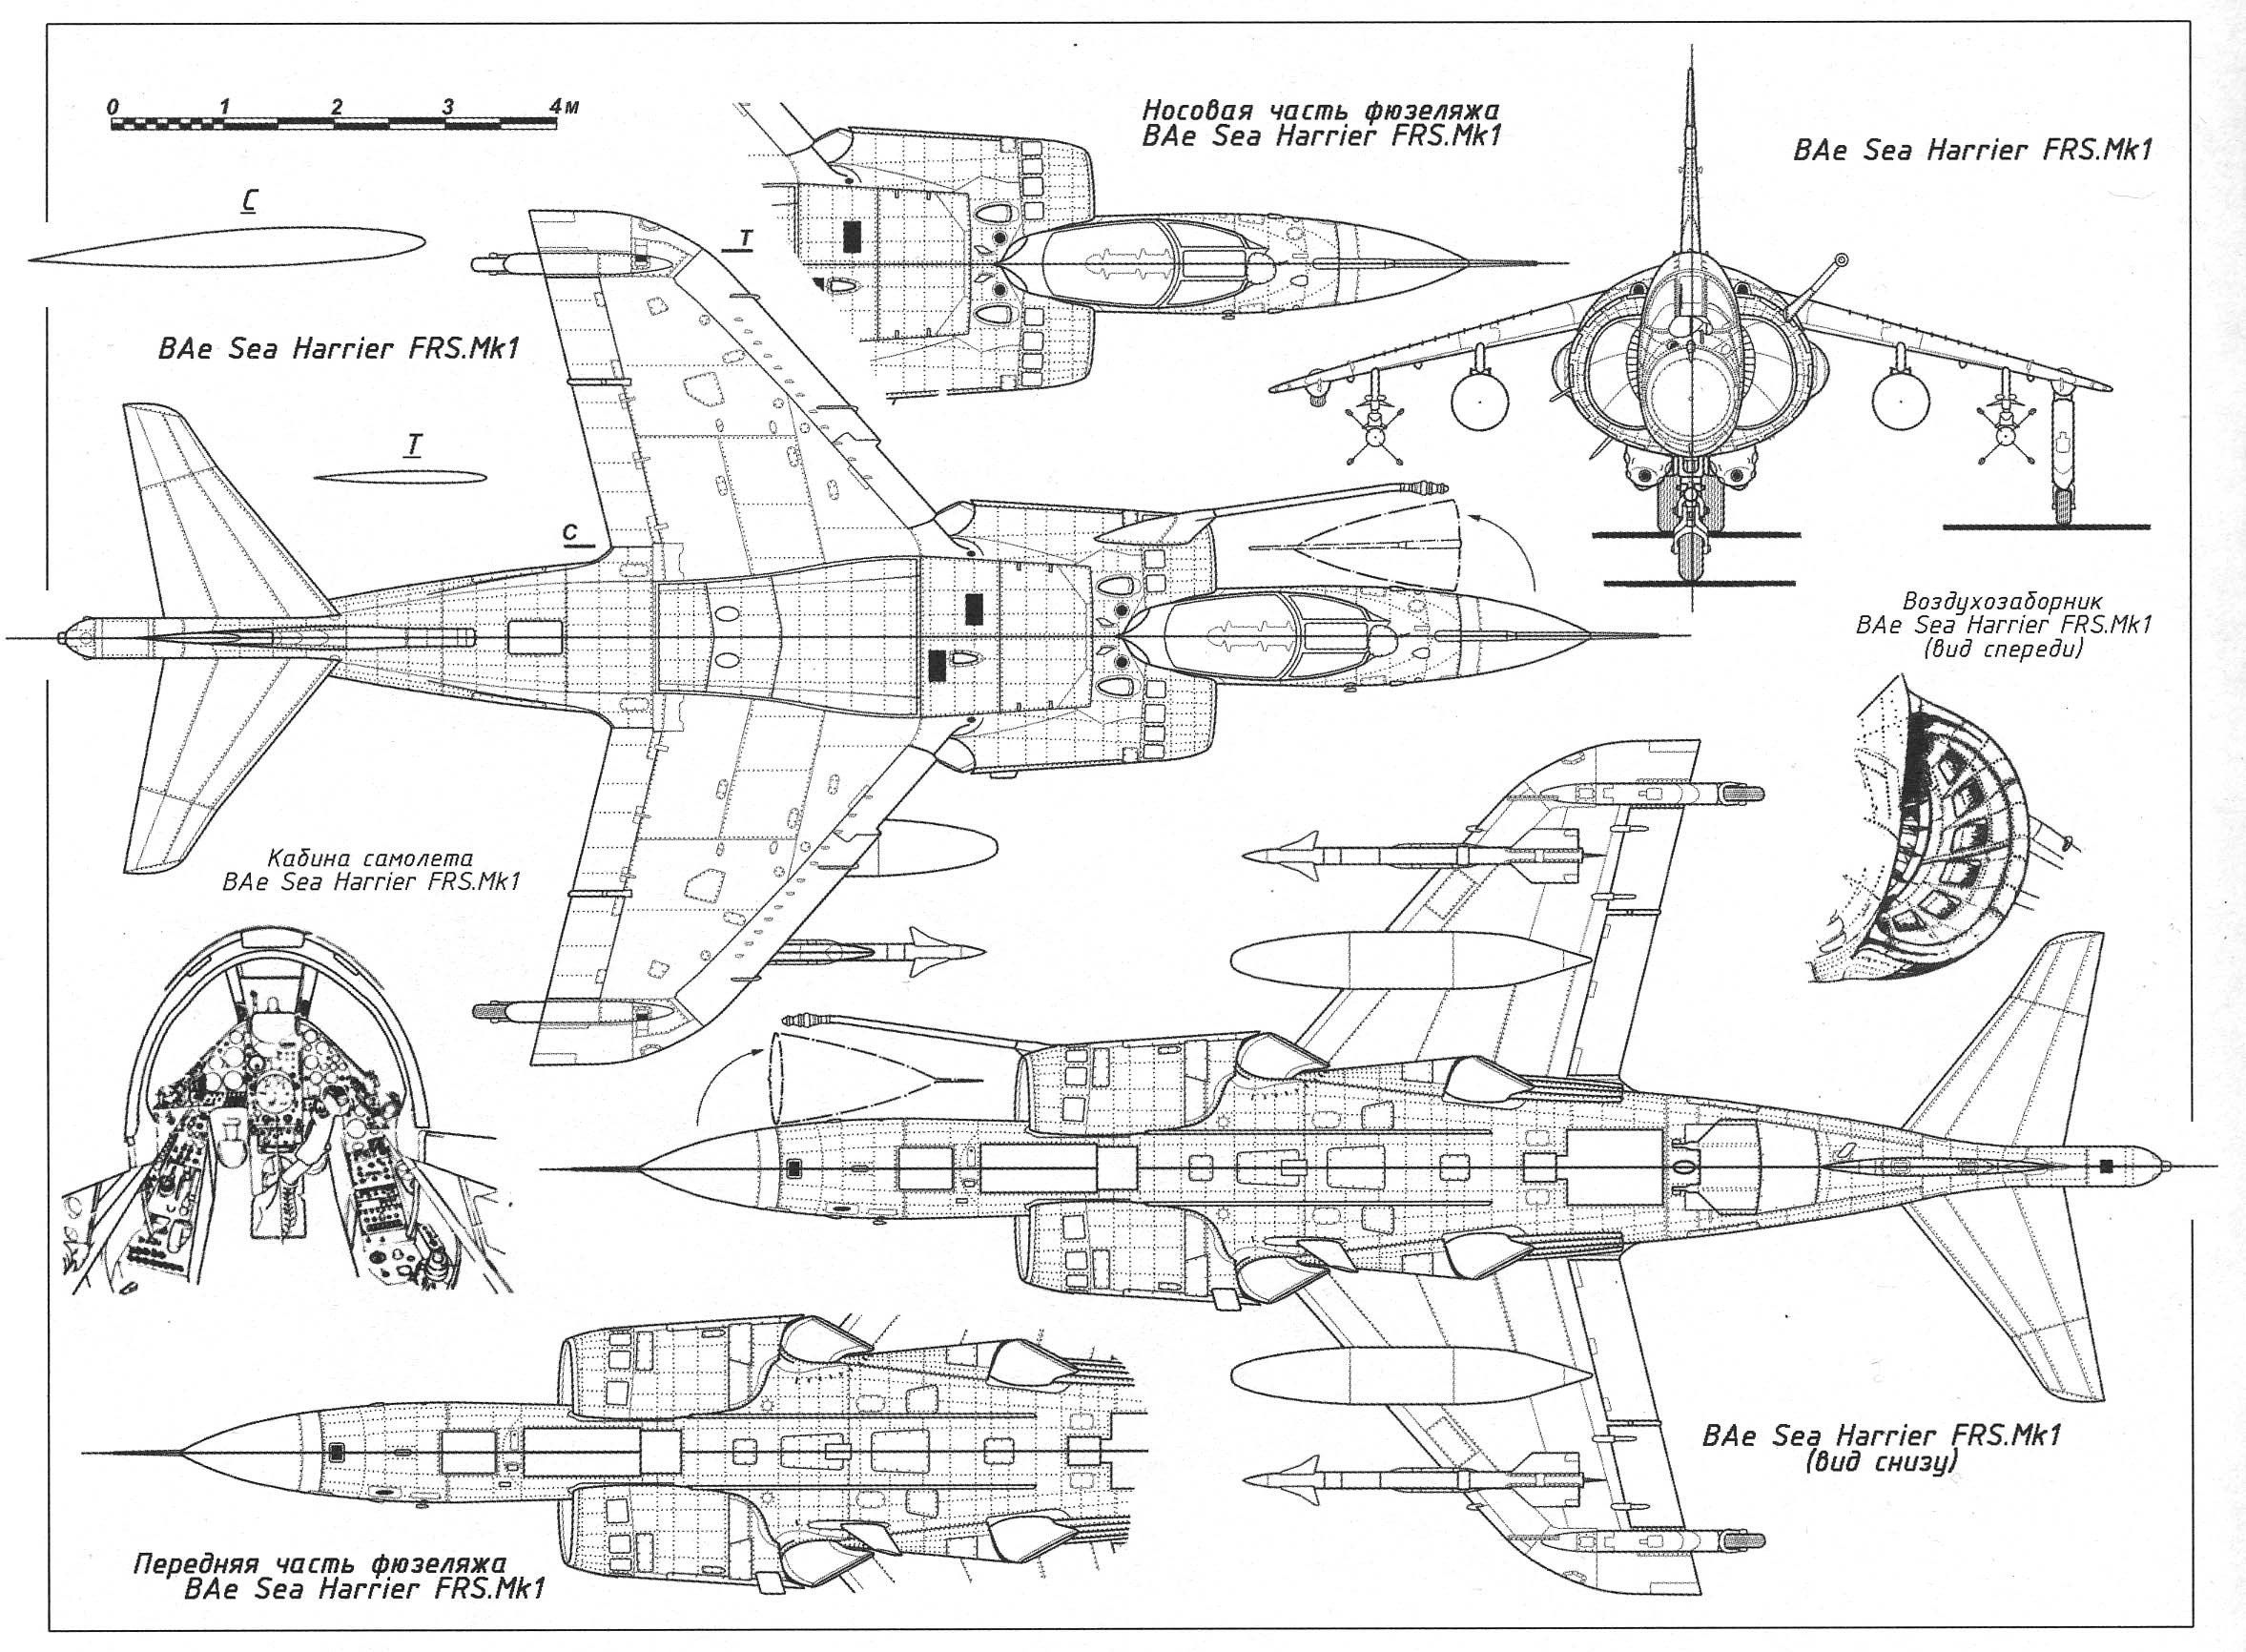 Pin By Michael Luzzi On Aircraft 3 View Scale Drawings